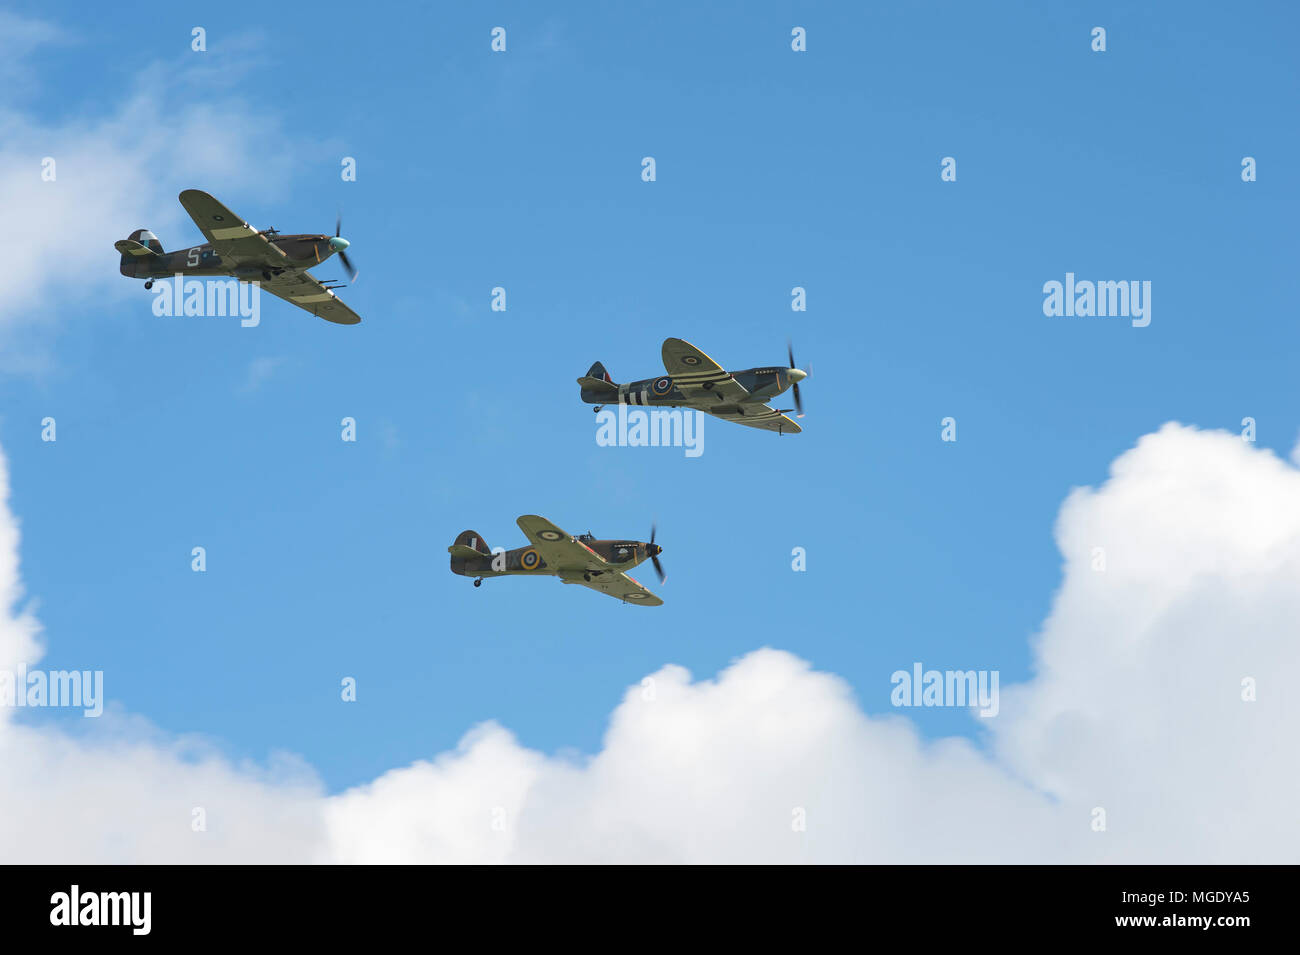 Spitfire & Hawker Hurricanes - Stock Image